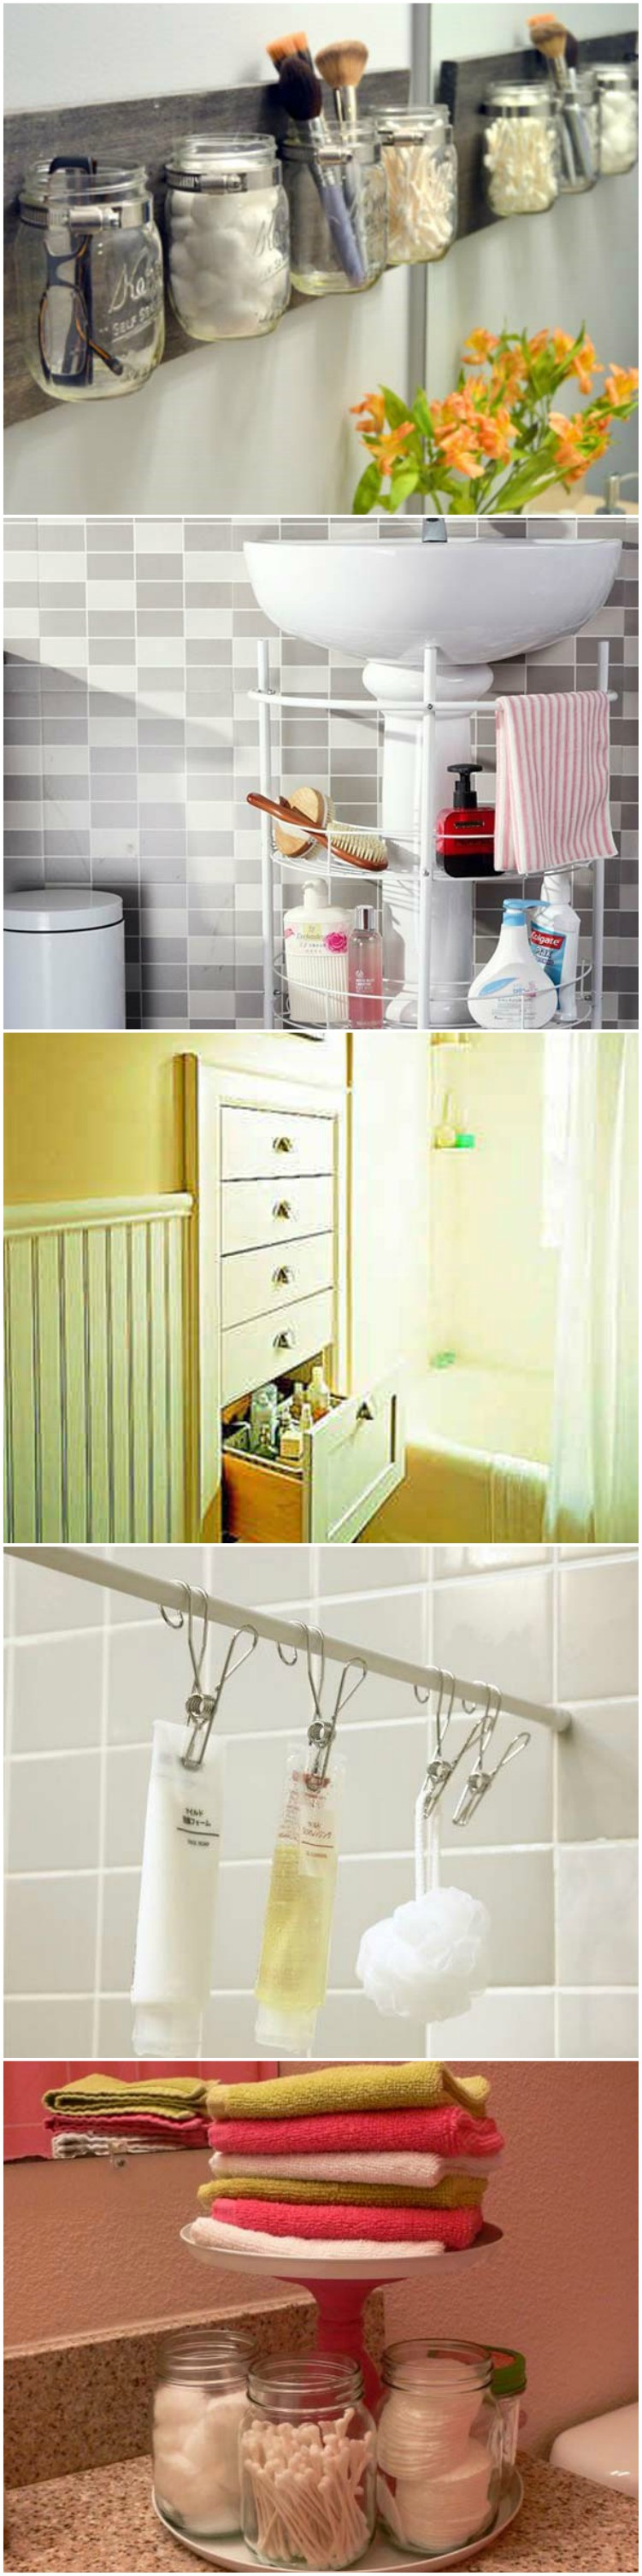 10 amazingly diy small bathroom storage hacks help - Diy Small Bathroom Storage